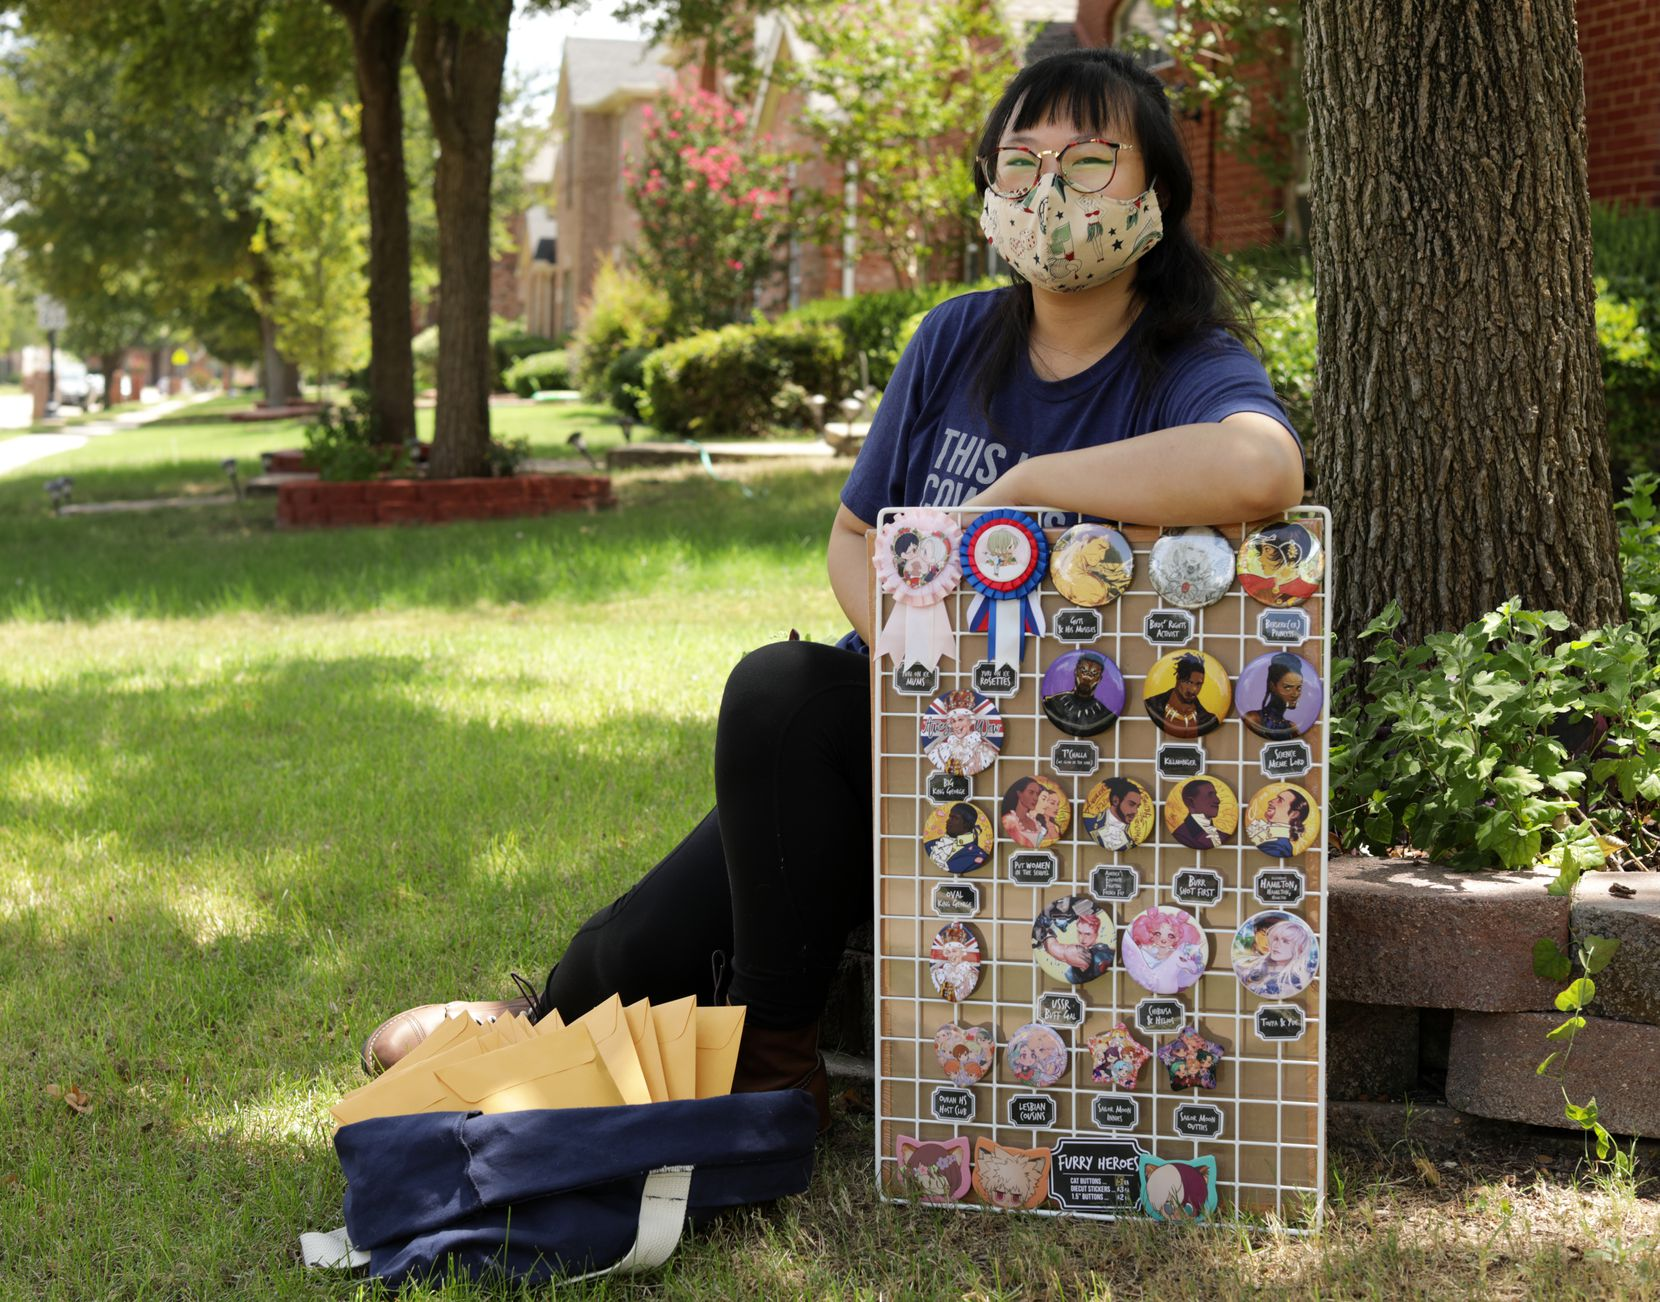 Artist Susan Bin says her business selling keychains, drawings, pins, pillows, magnets and stickers on Etsy has boomed during the pandemic.